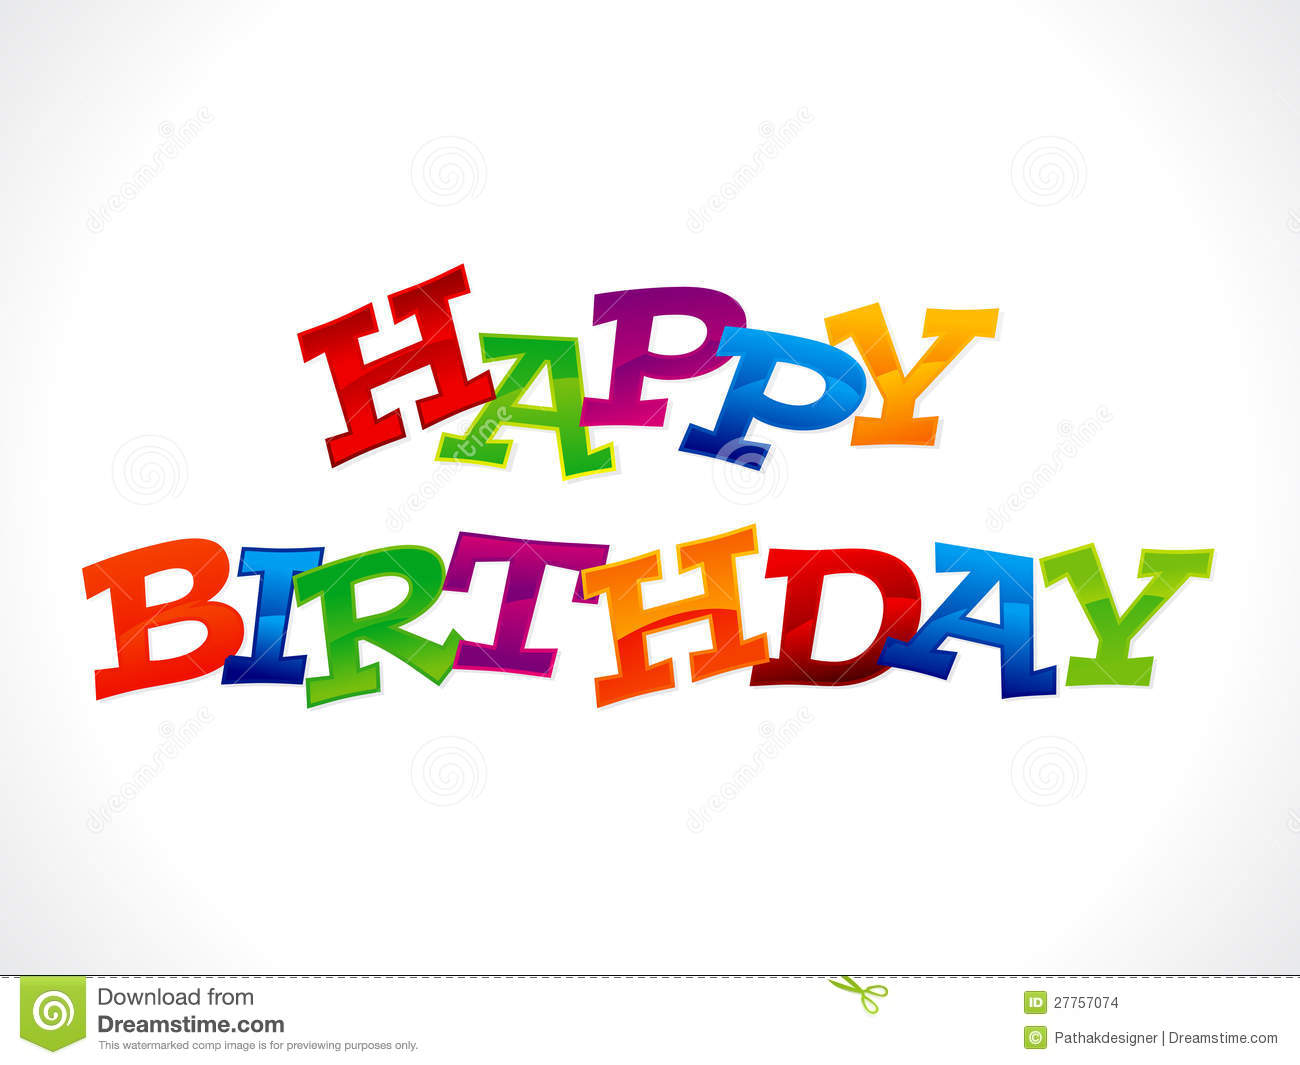 Abstract Colorful Happy Birthday Text Stock Images - Image: 27757074